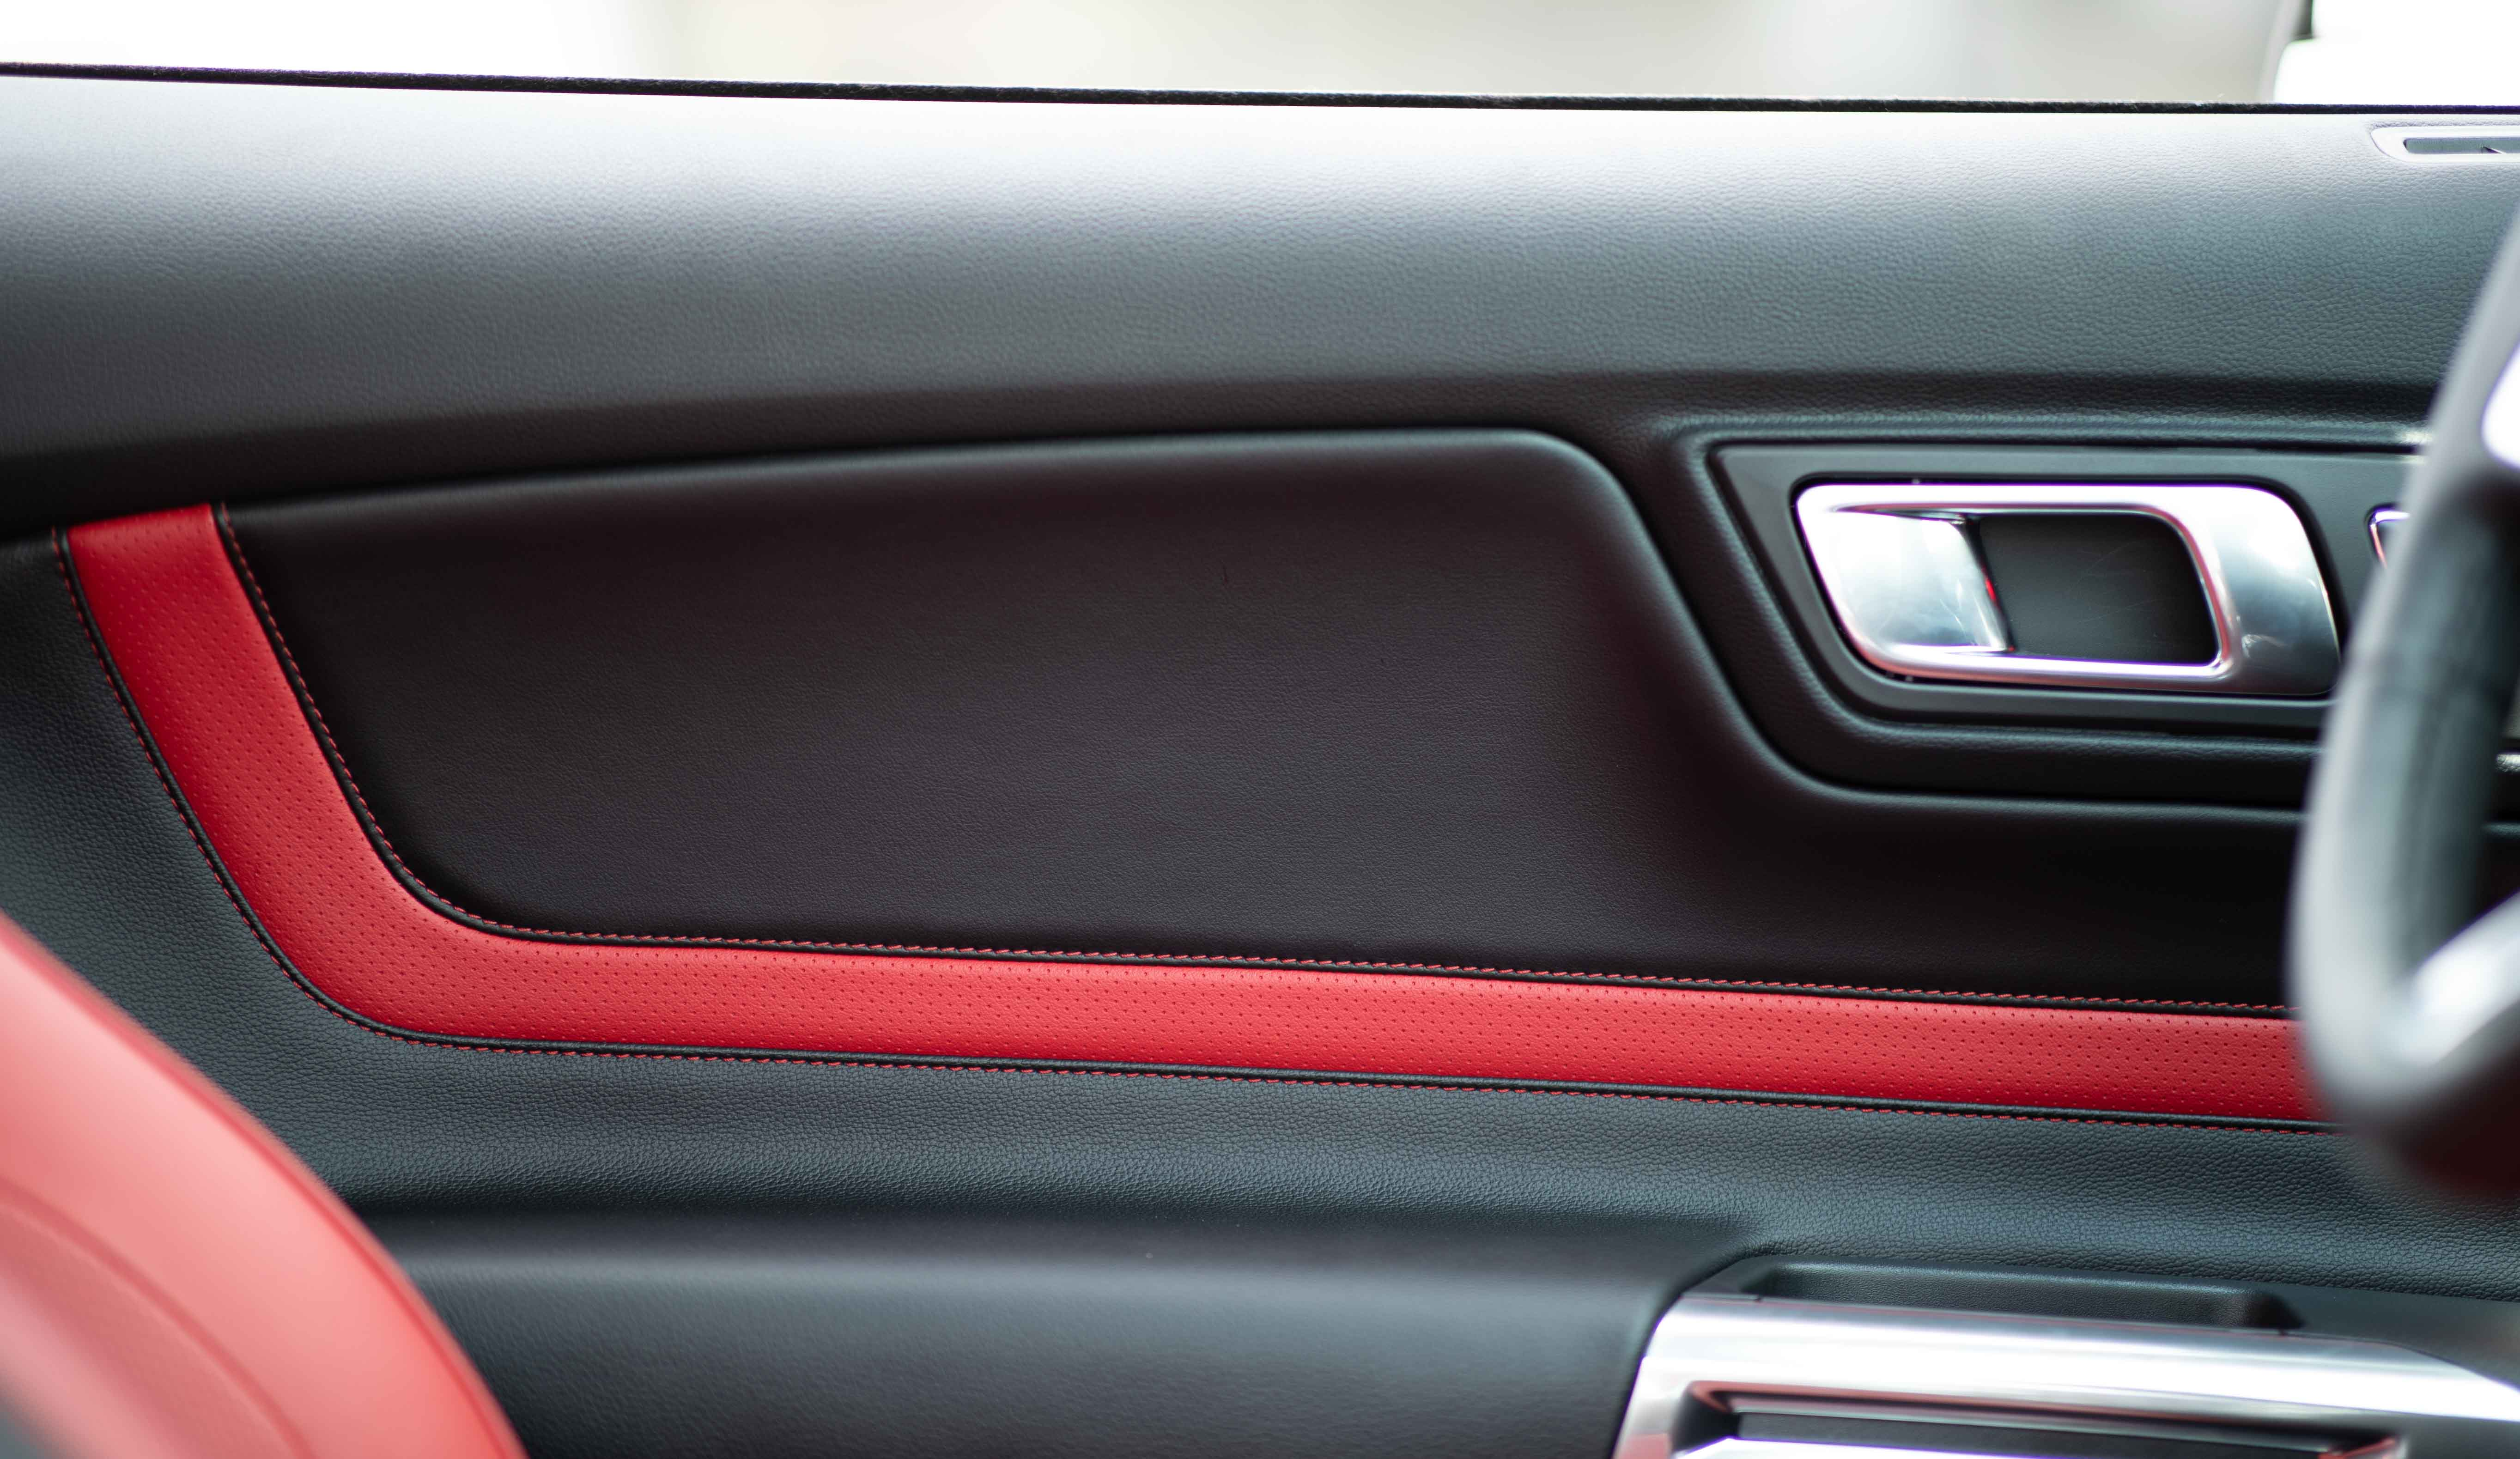 2018 Ford Mustang GT Performance Pack 2 Interior door